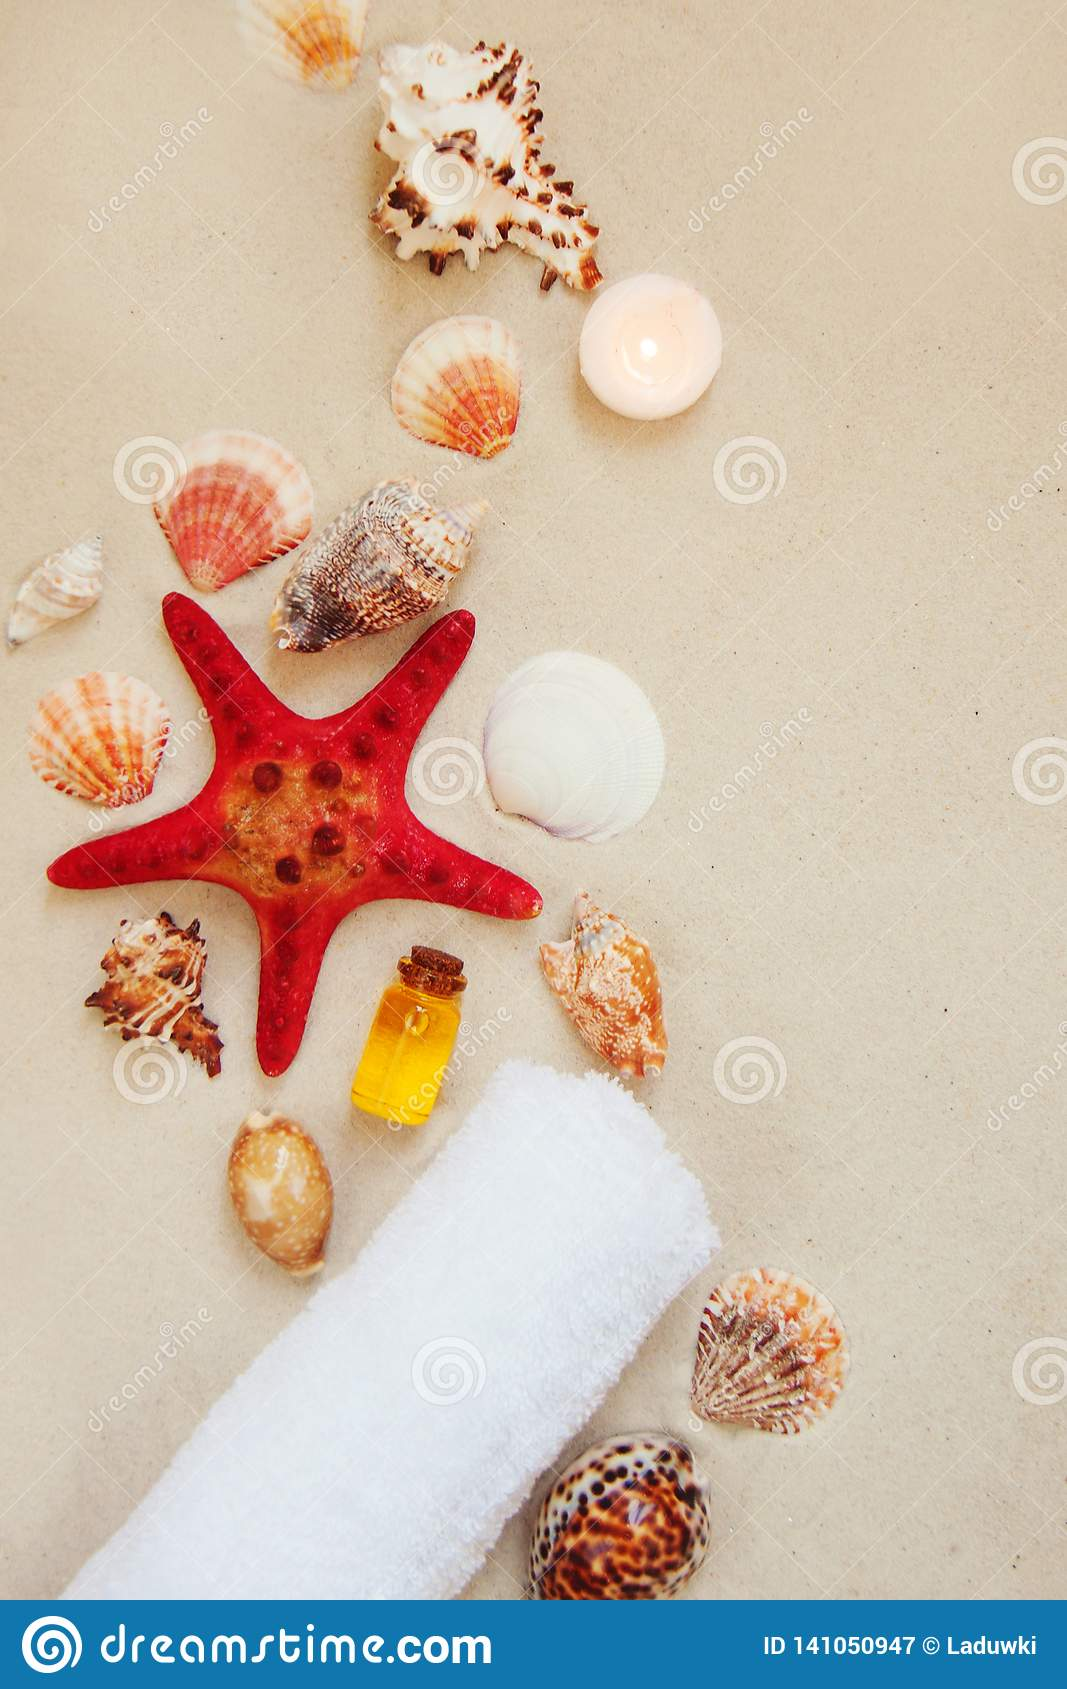 Sea shells and red star fish on sandy beach with copy space for text. Spa salon relax background.